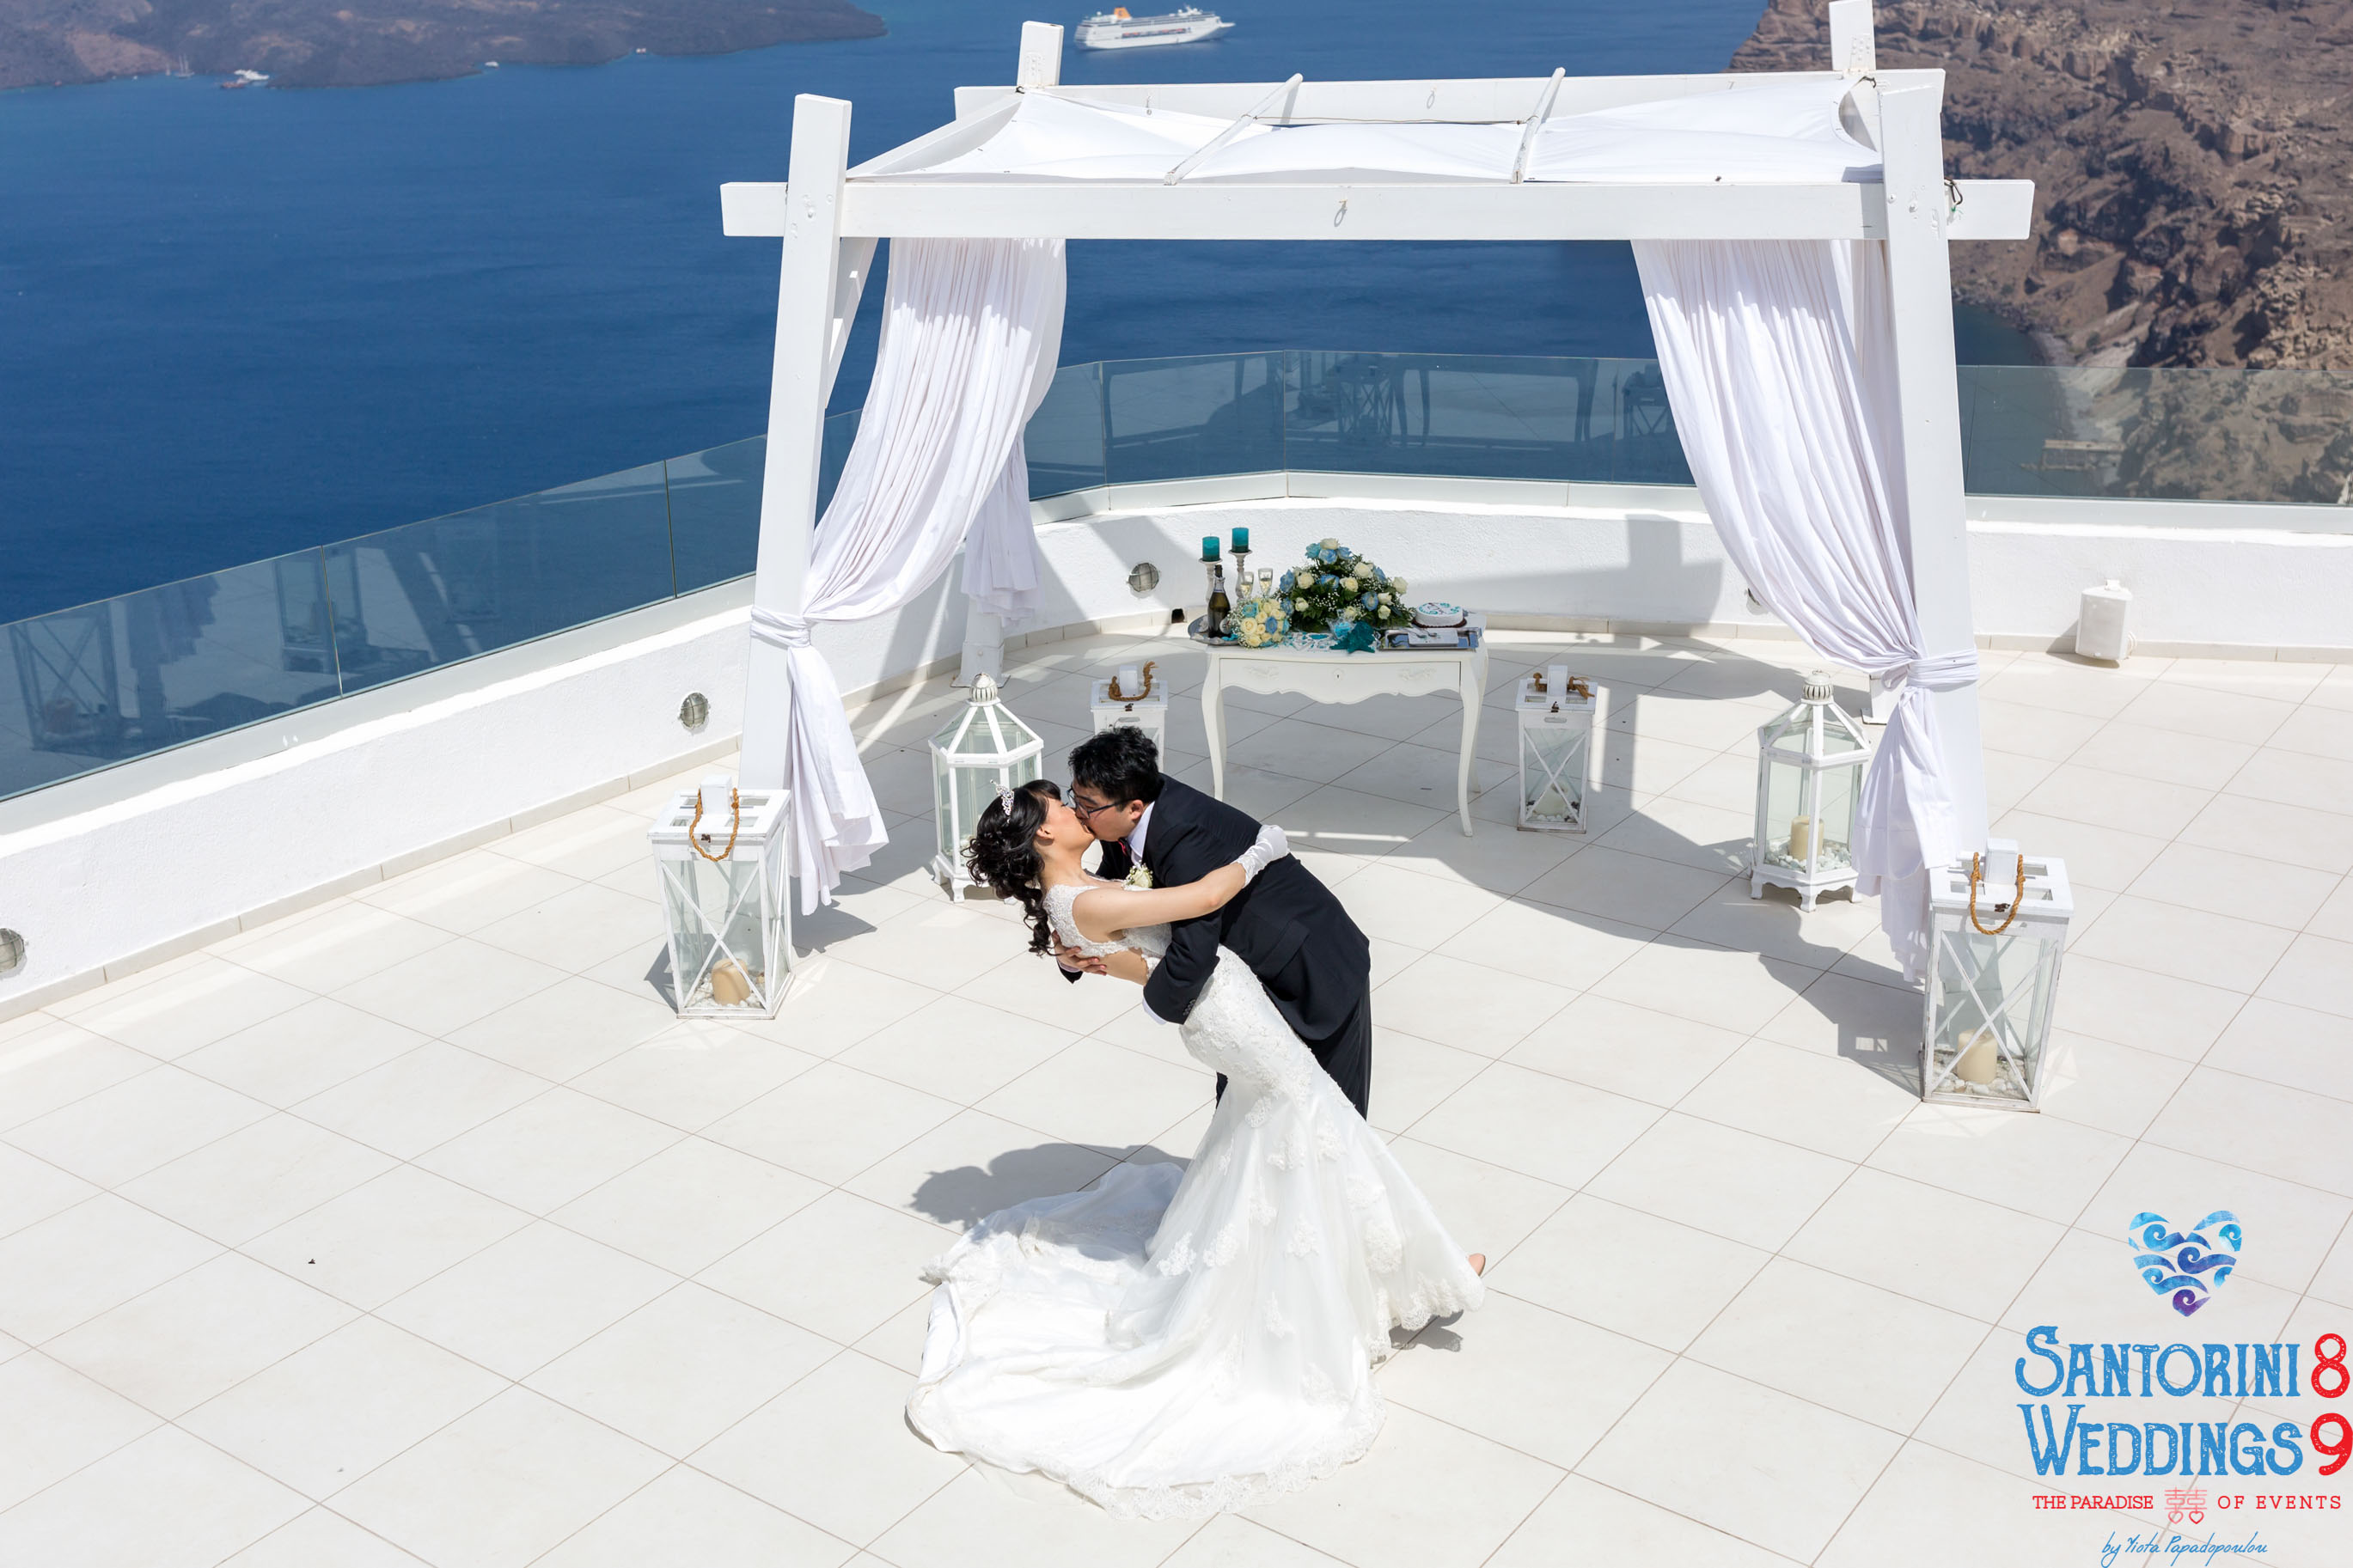 sun-zhang-wedding-by-santorini8-weddings9-dragons-group-12.jpg